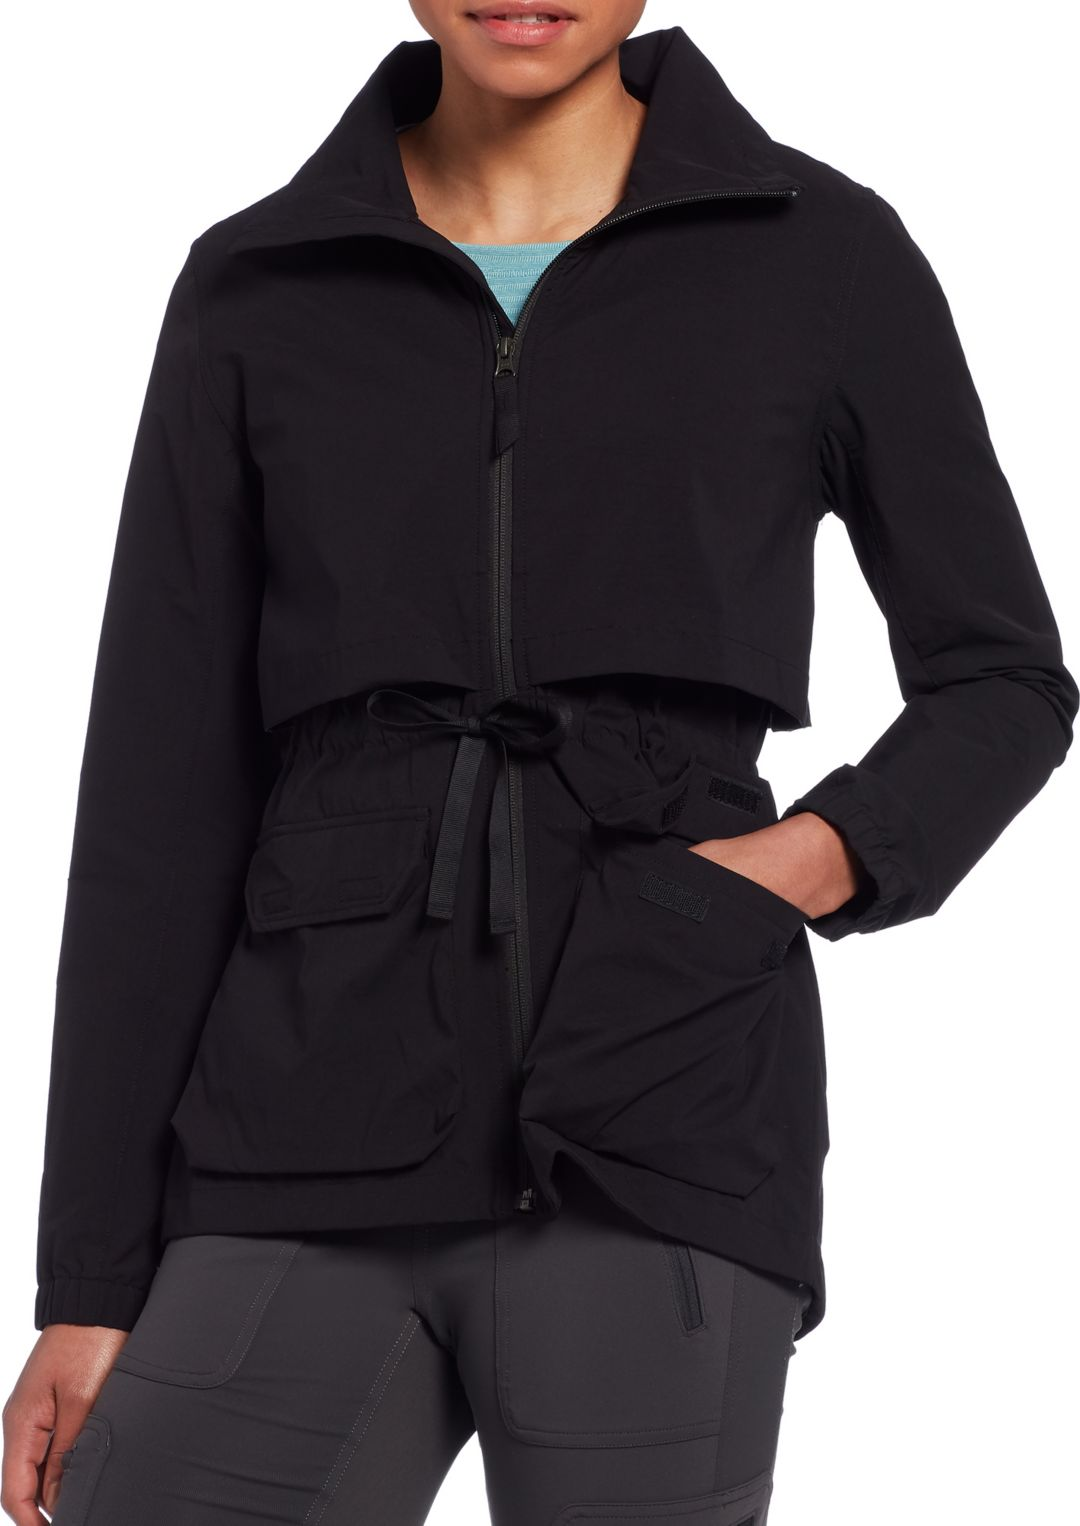 73d6ee0fc The North Face Women's Sightseer Jacket